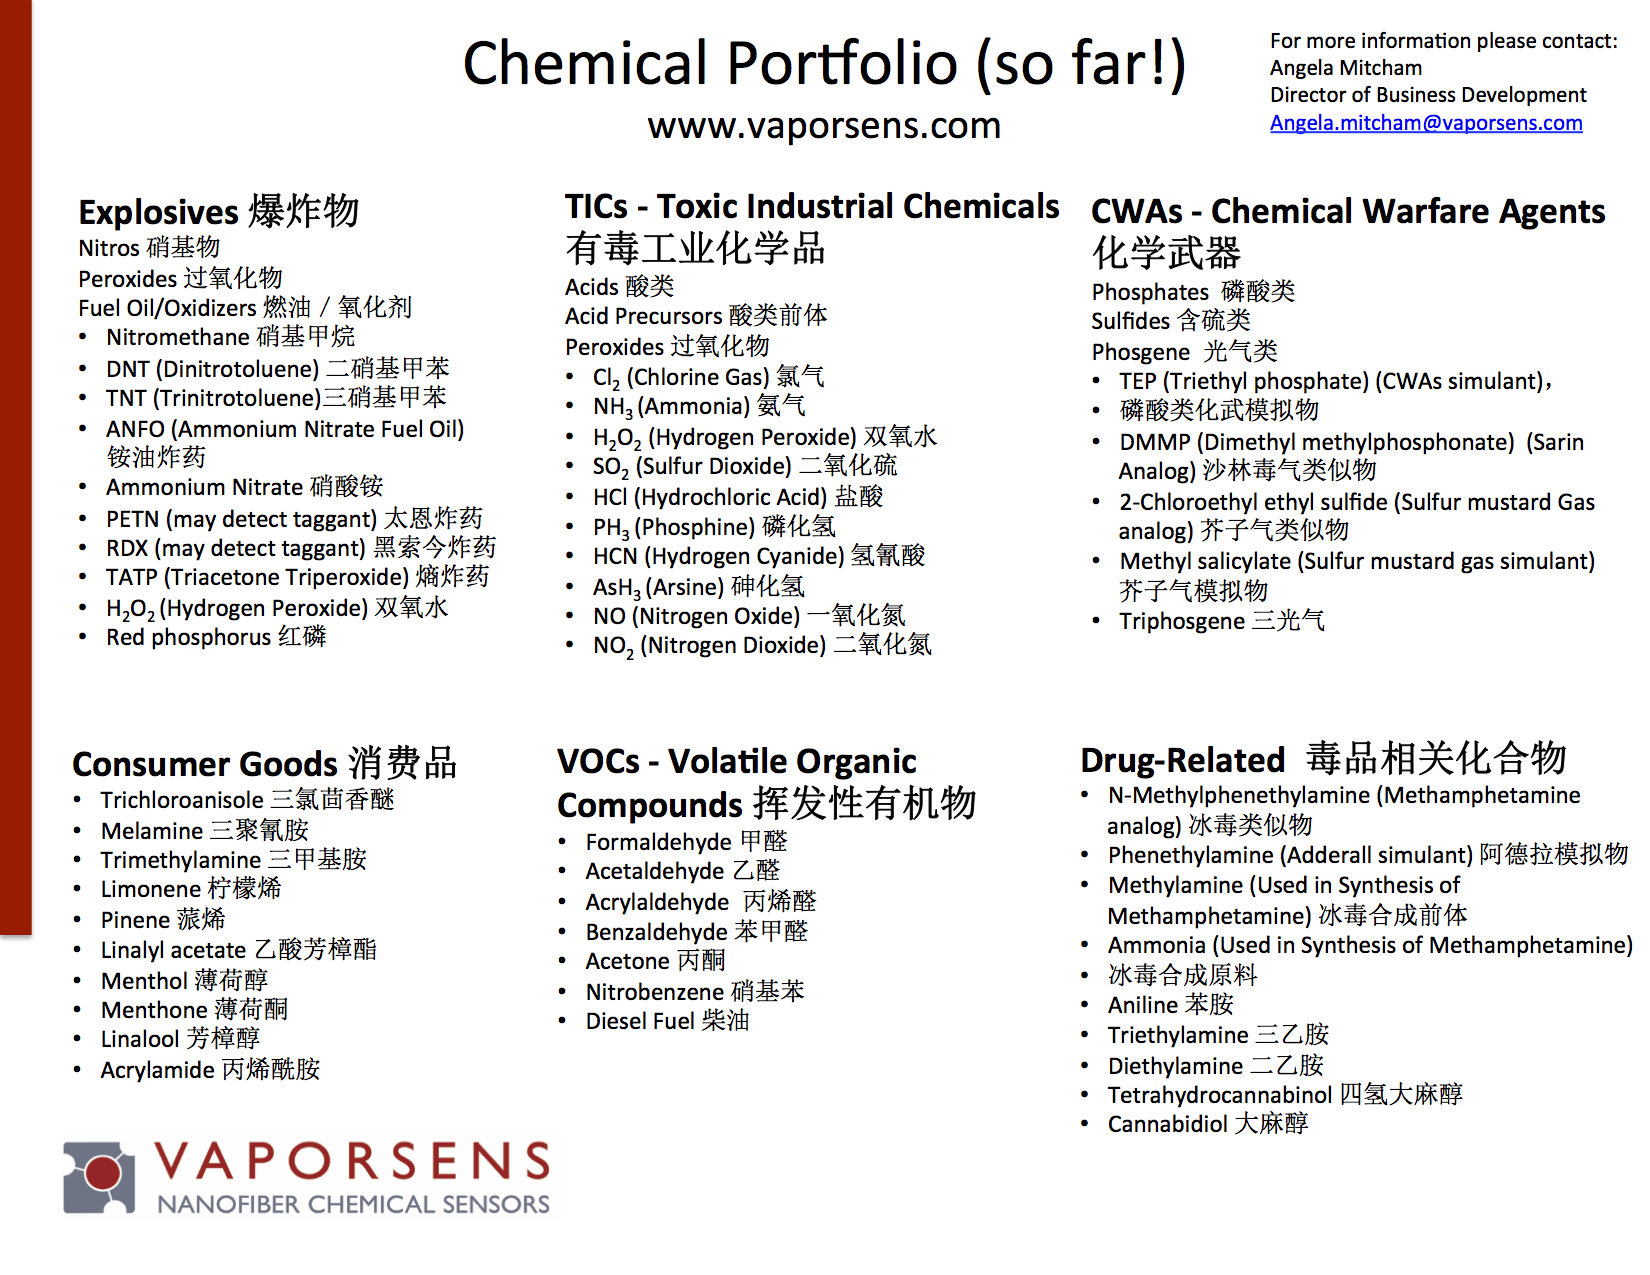 List of Chemicals 20170831 LZ Chinese translated.png